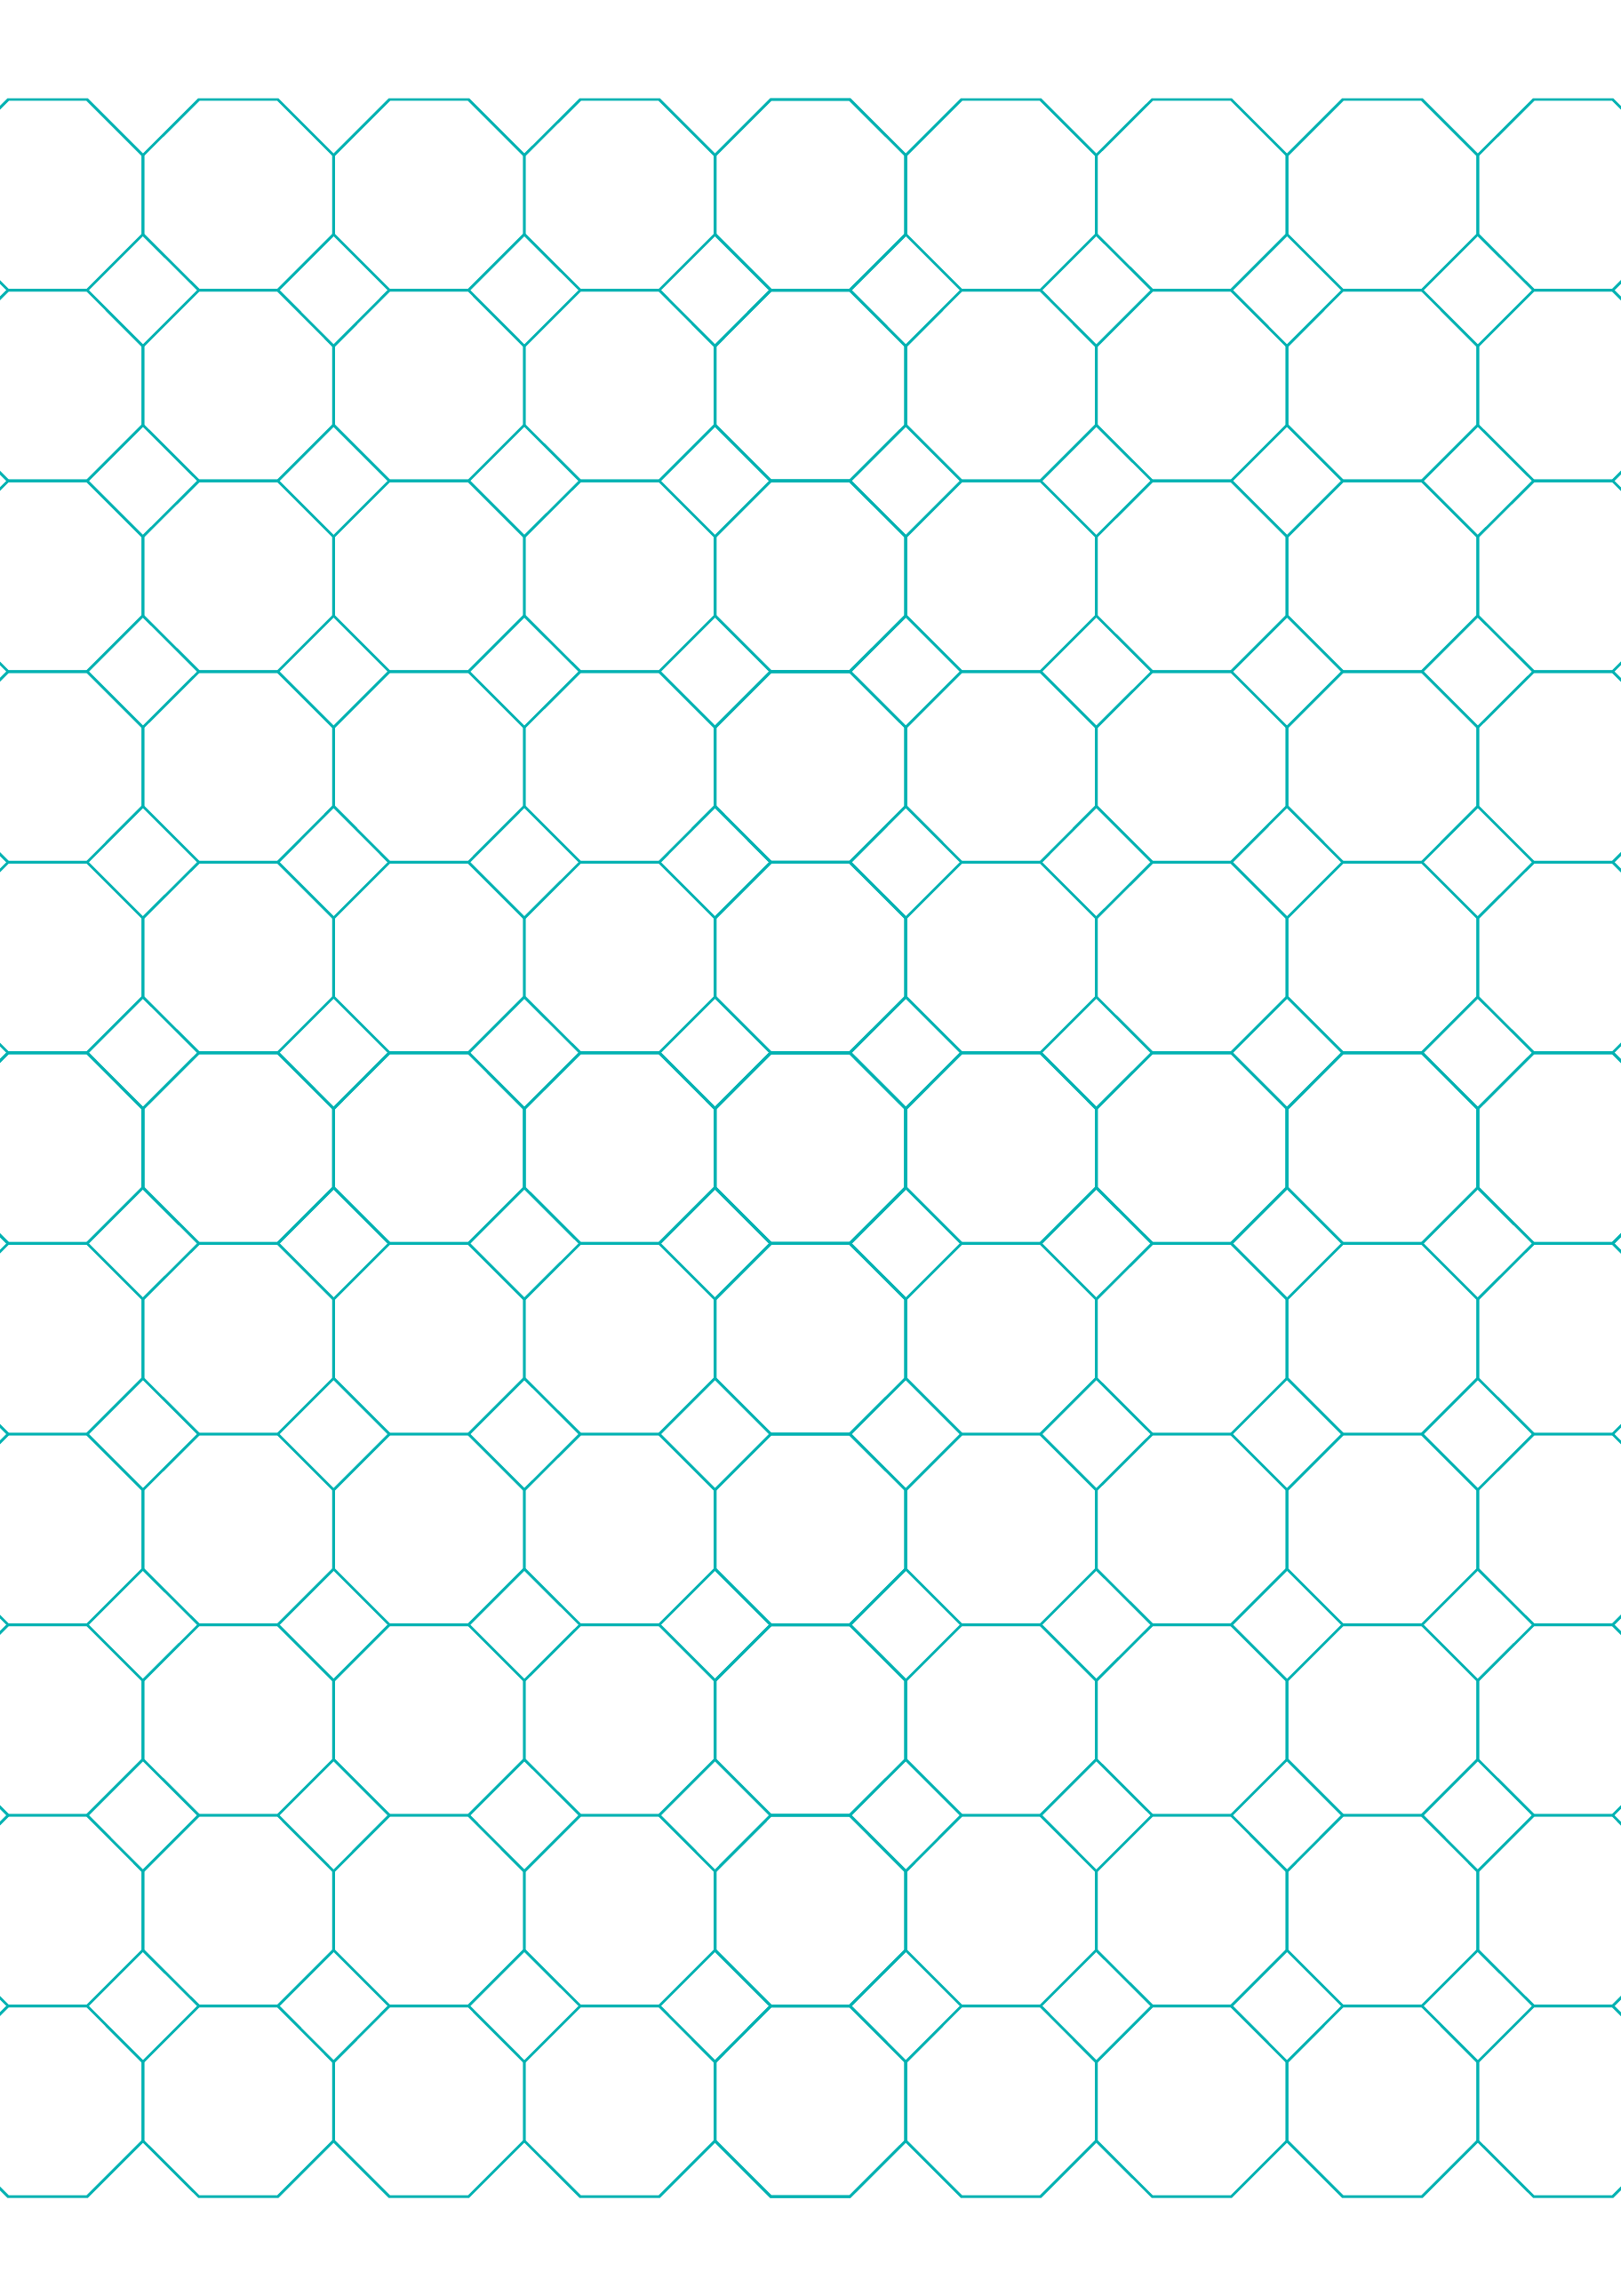 Octagon Graph Paper With 1 Inch Spacing On Letter Sized Paper Free Download